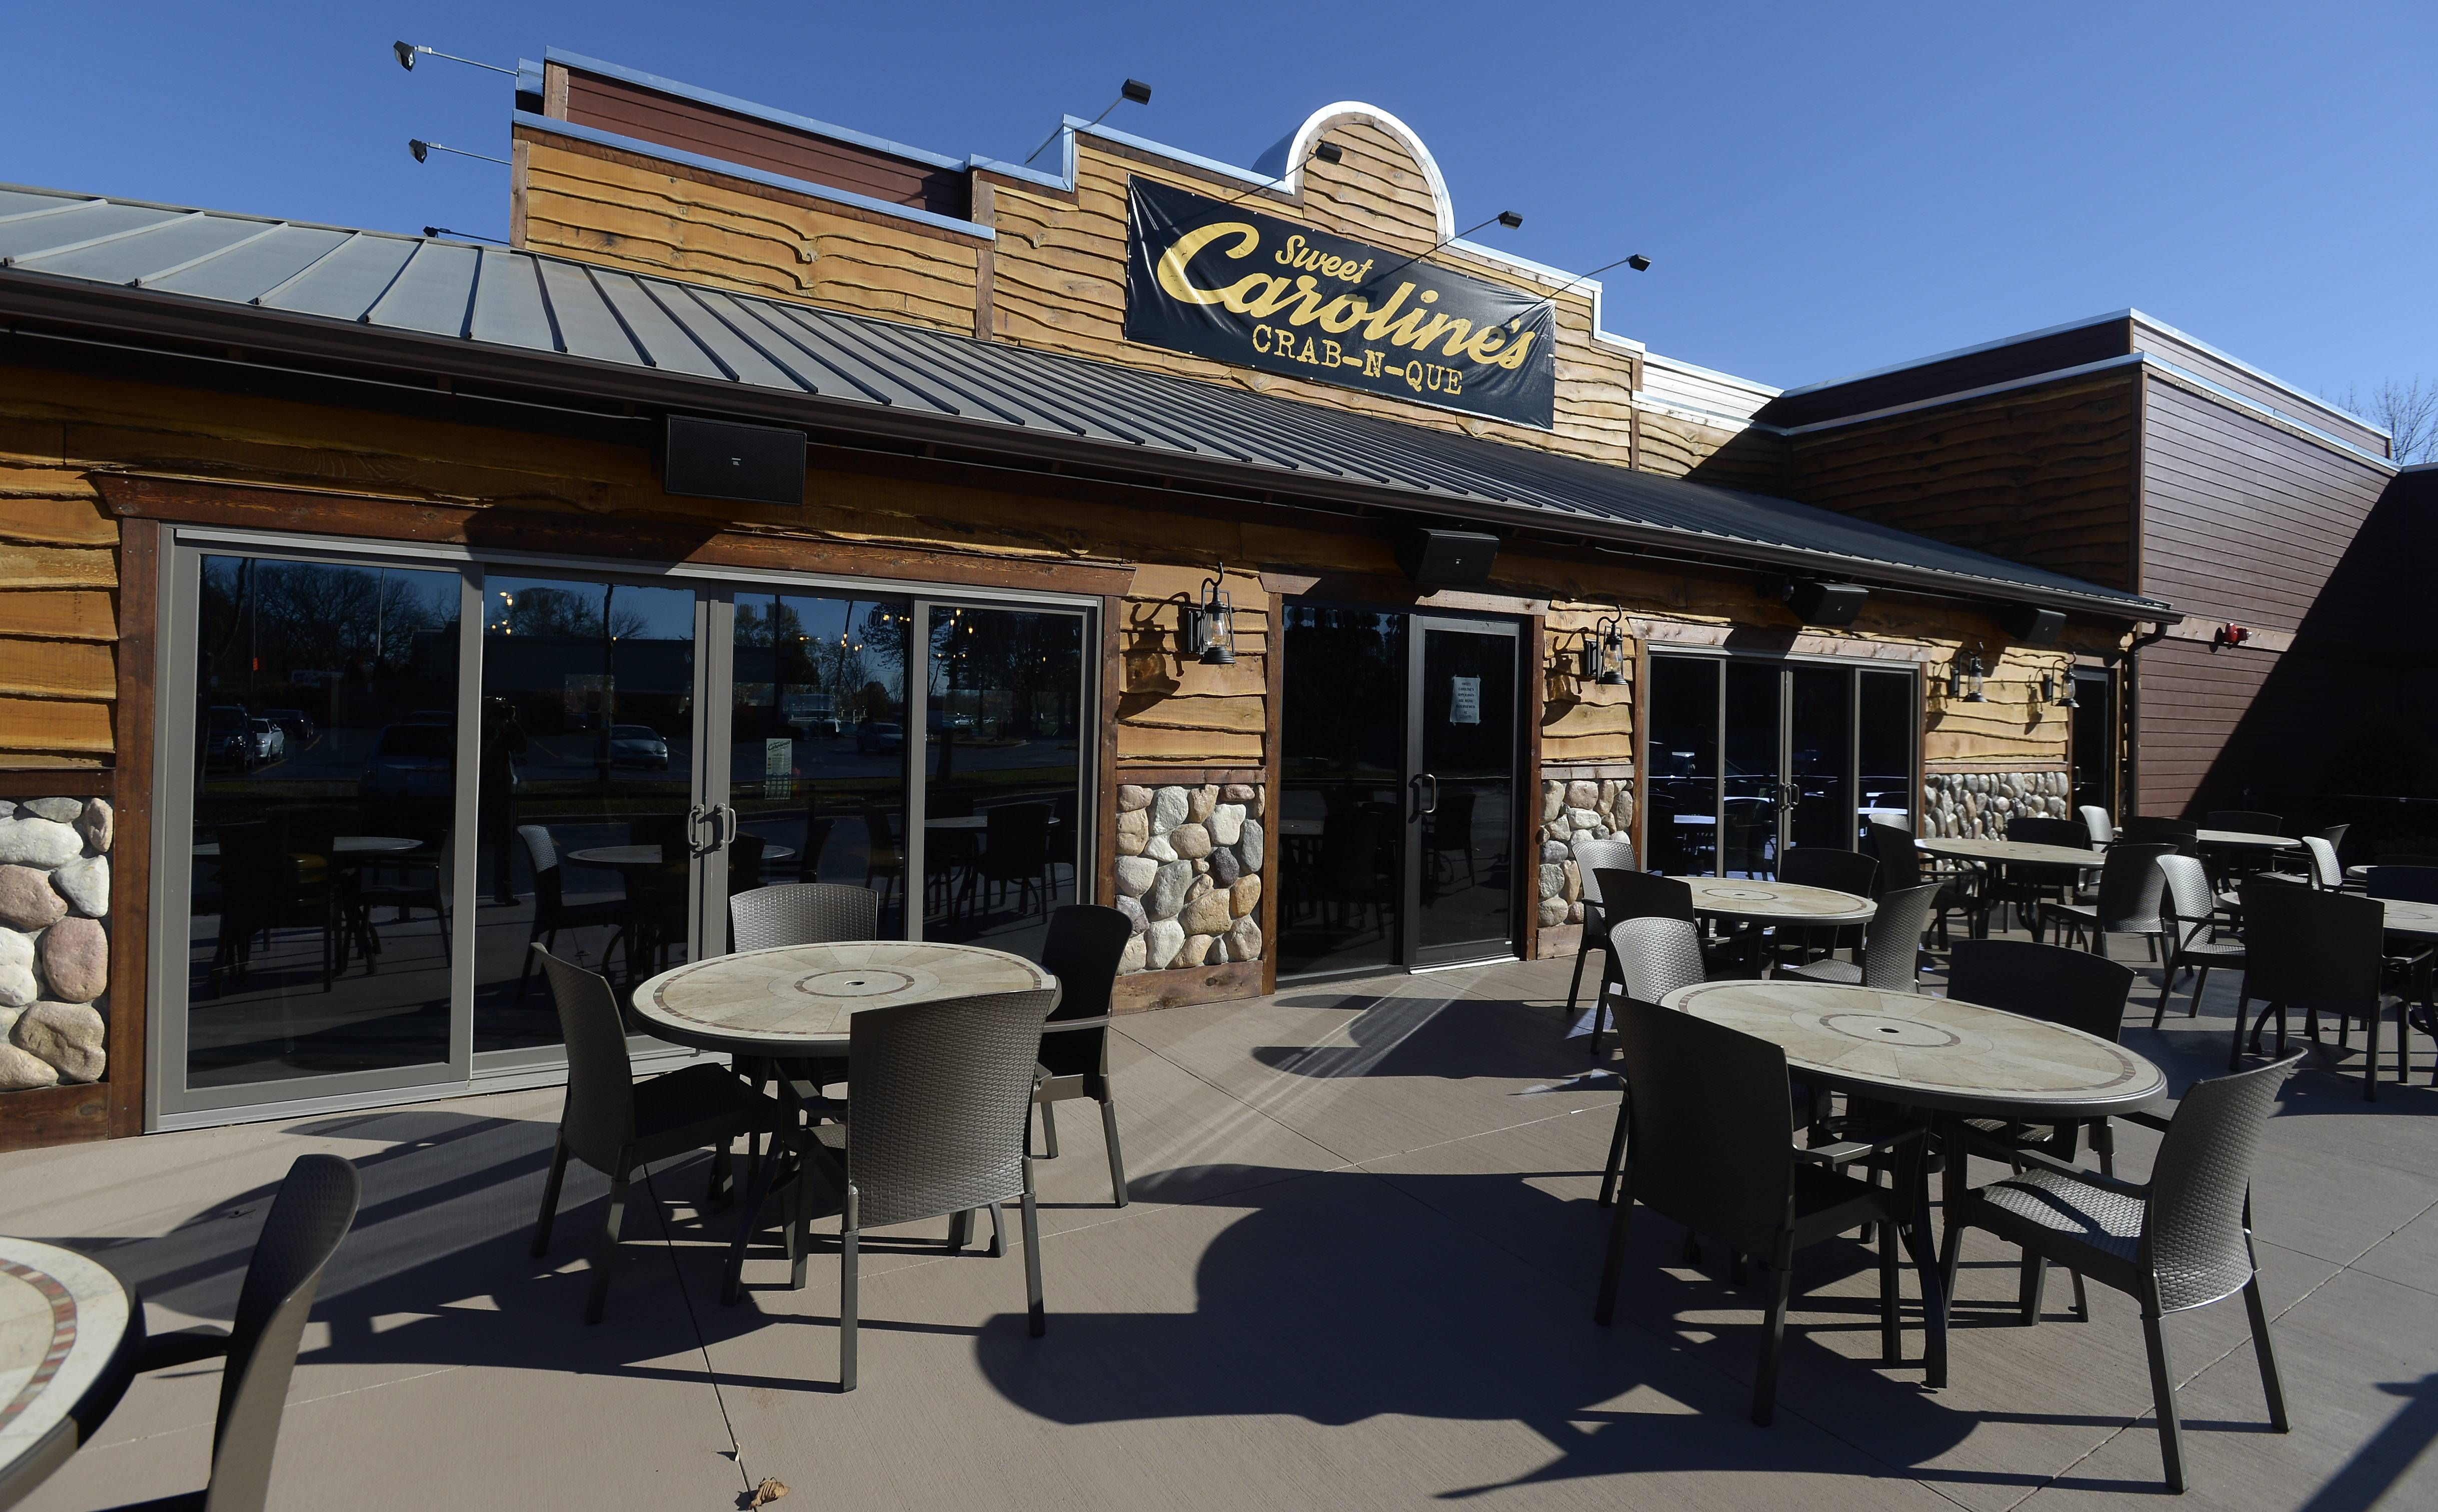 Sweet Caroline's Crab-N-Que will be opening Friday at Higgins and Barrington roads in Hoffman Estates.